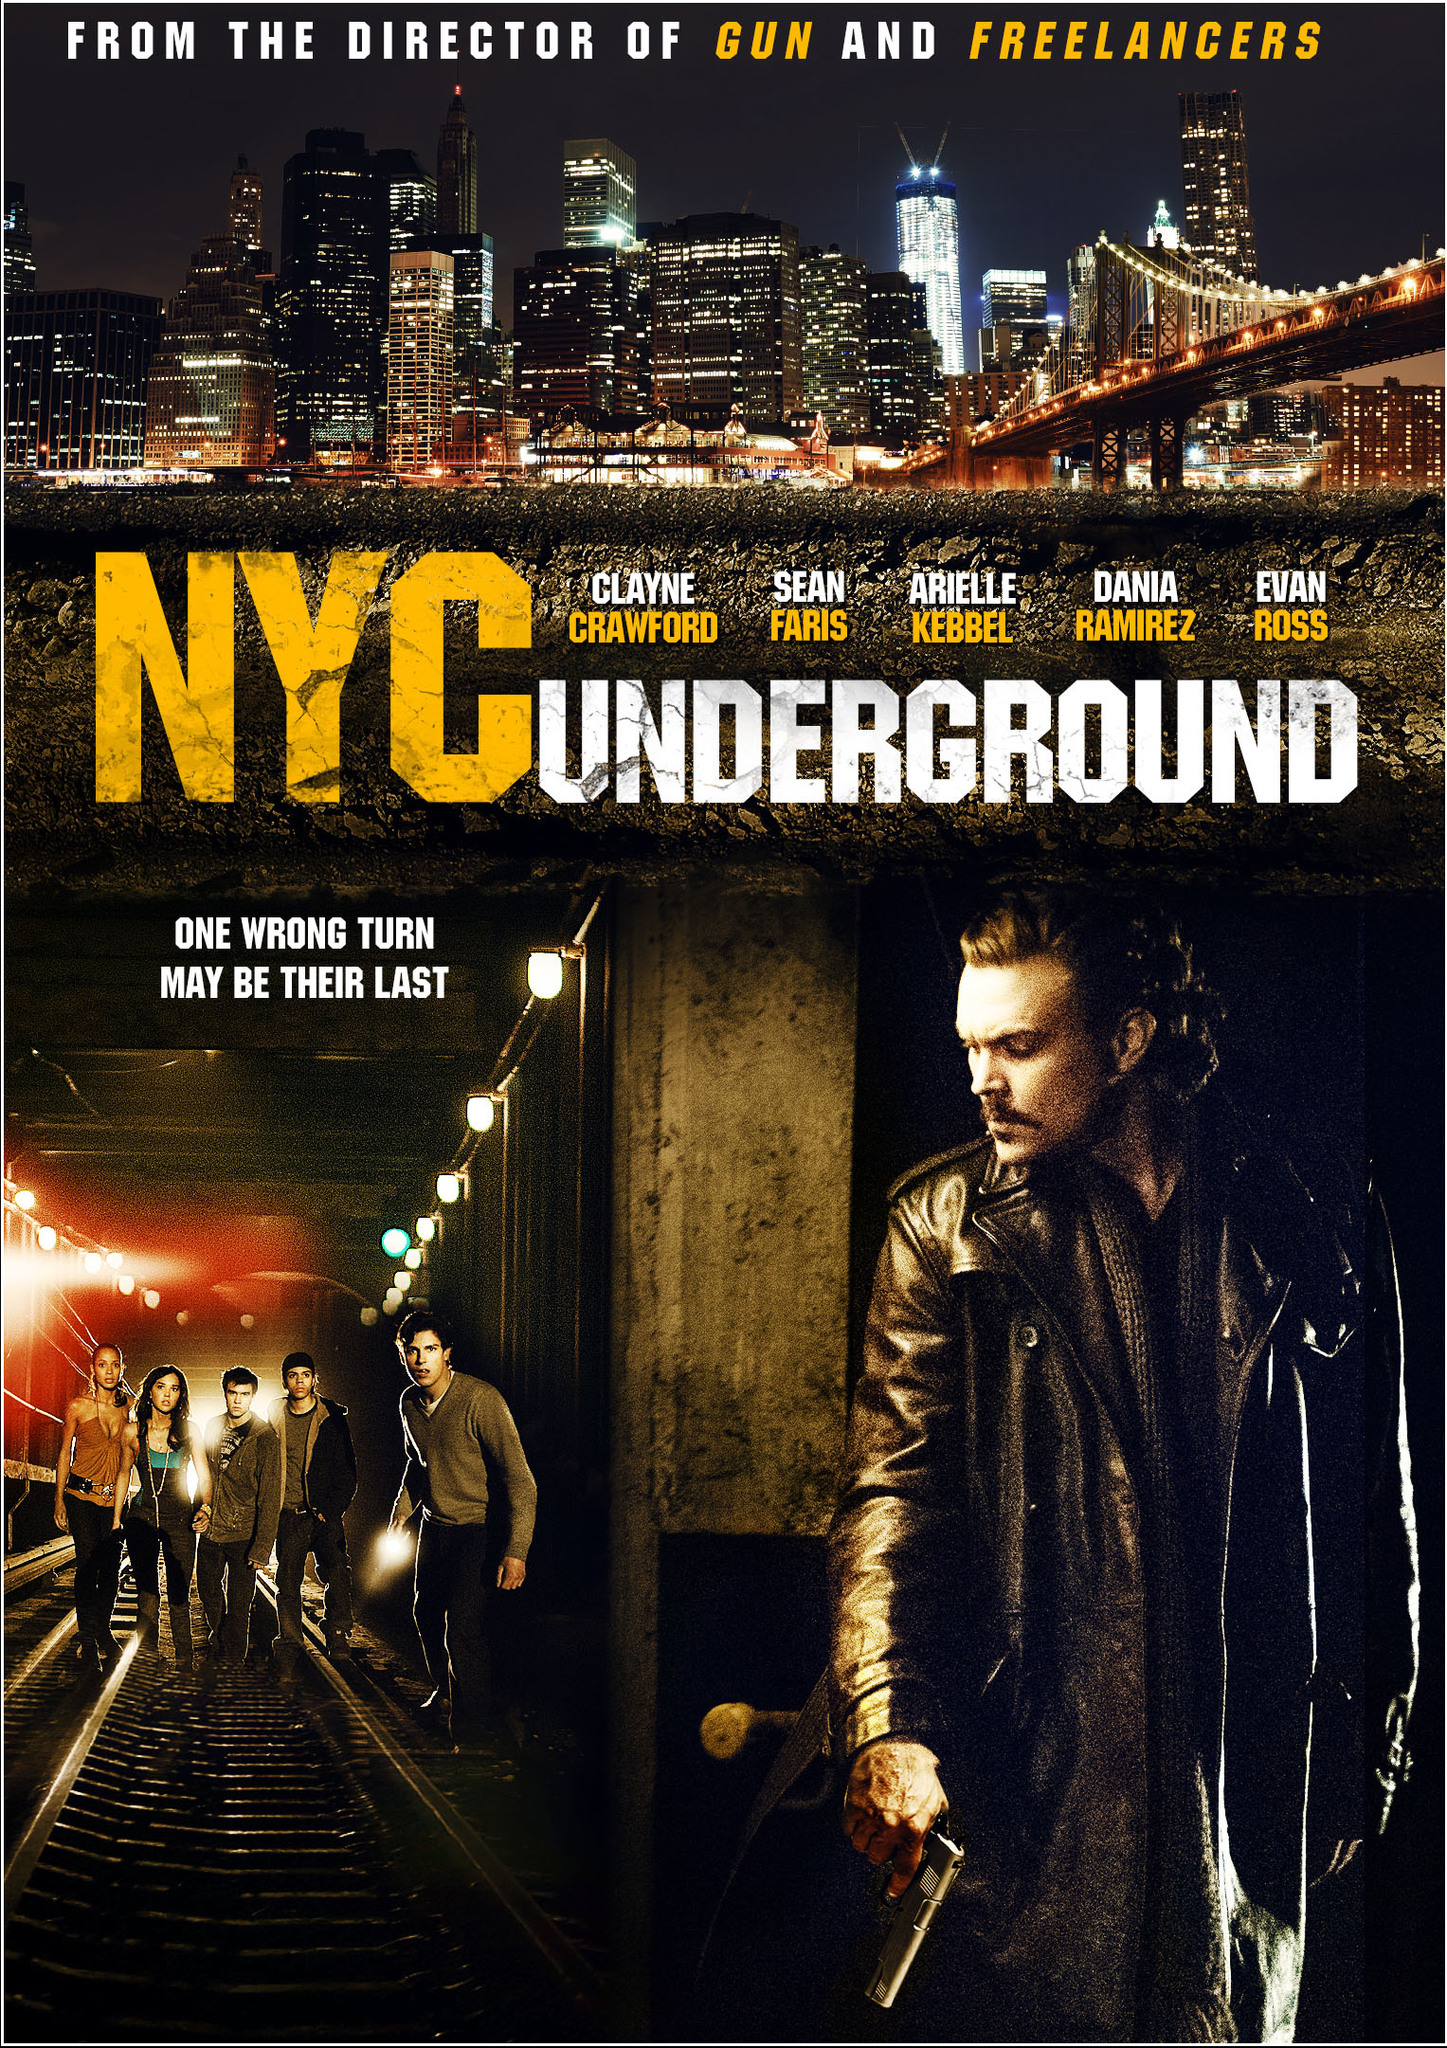 Image N.Y.C. Underground (2013) (V) Watch Full Movie Free Online